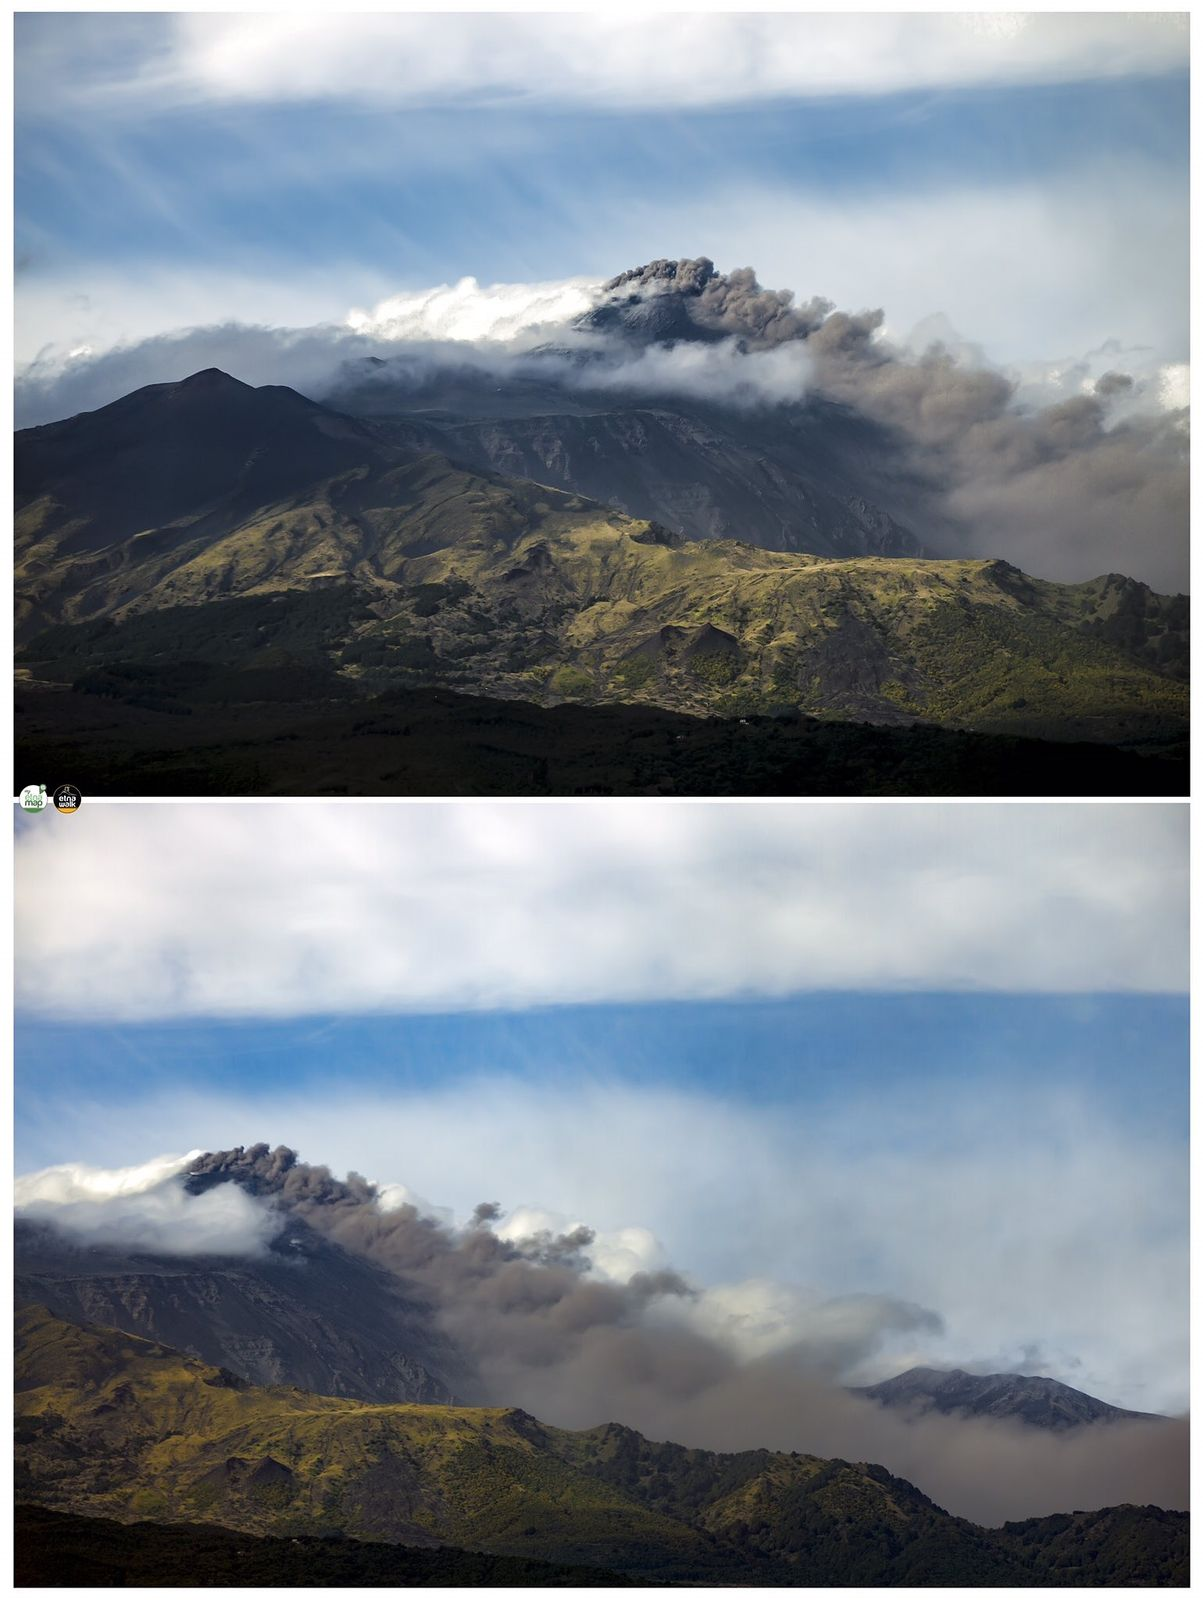 Etna - ash emission at the NSEC on 26.09.2020  - photo EtnaWalk